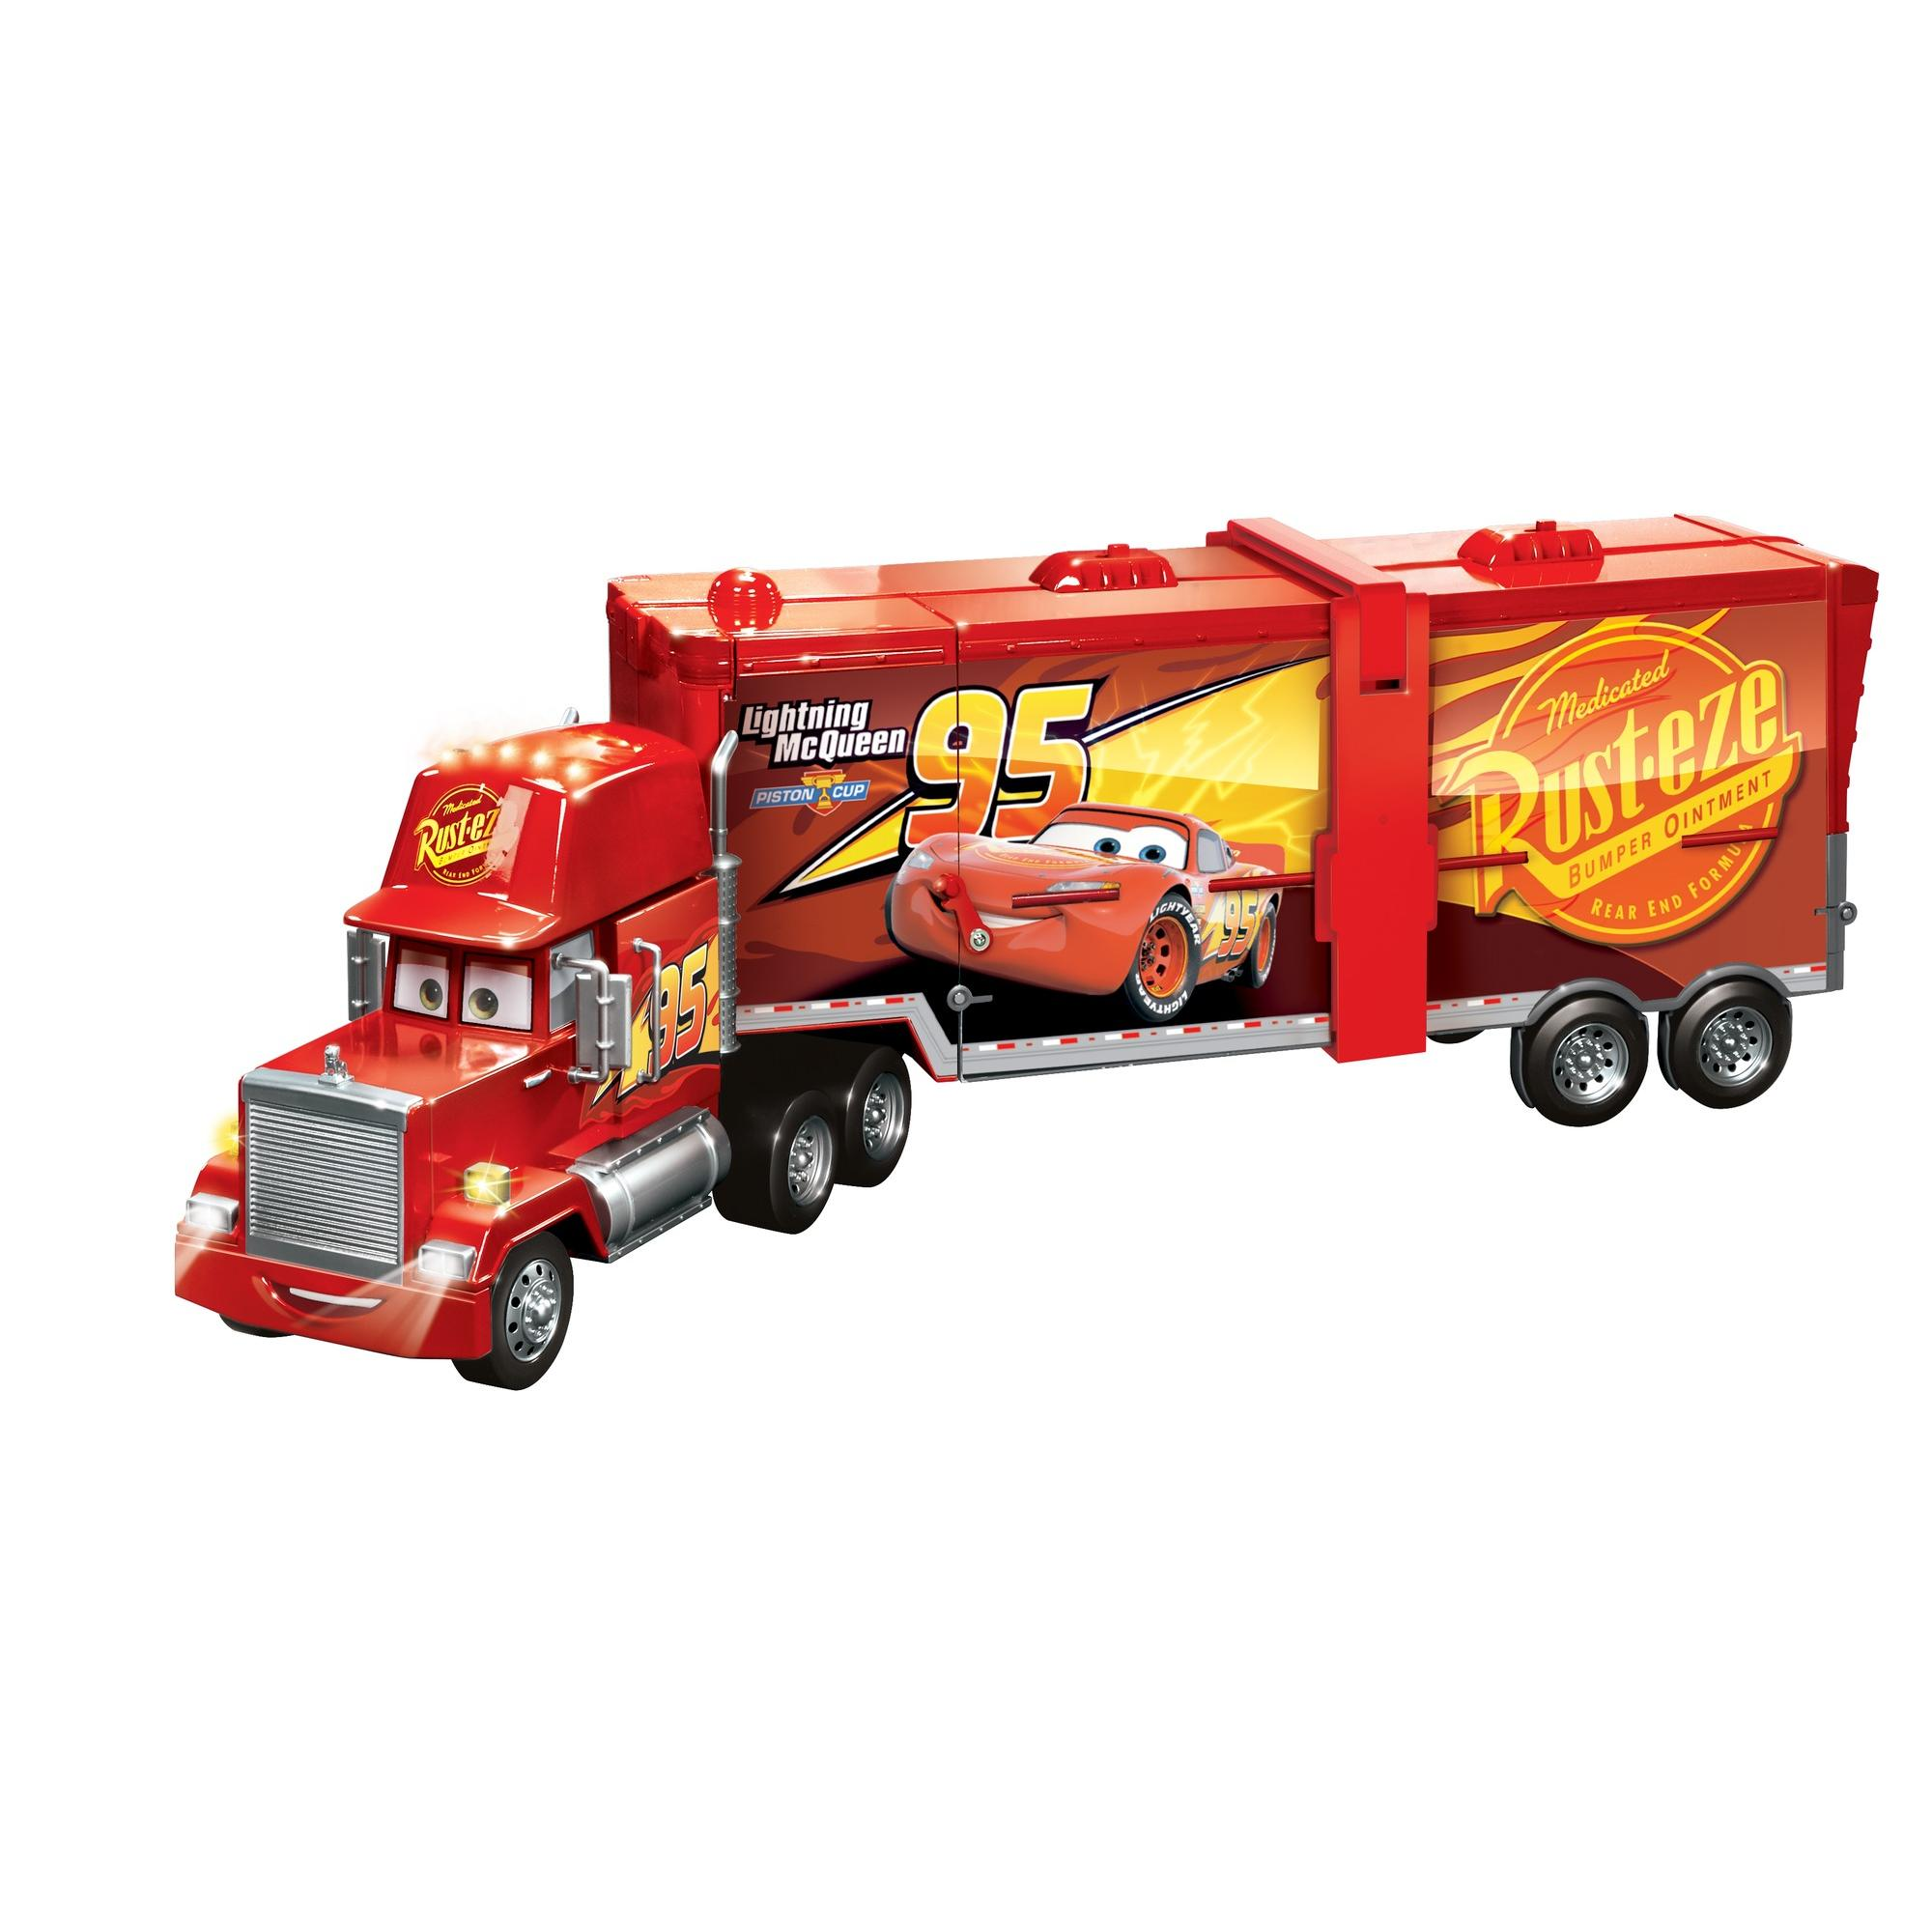 Disney/Pixar Cars Super Track Mack Playset 2-in-1 Transforming Truck and Racetrack